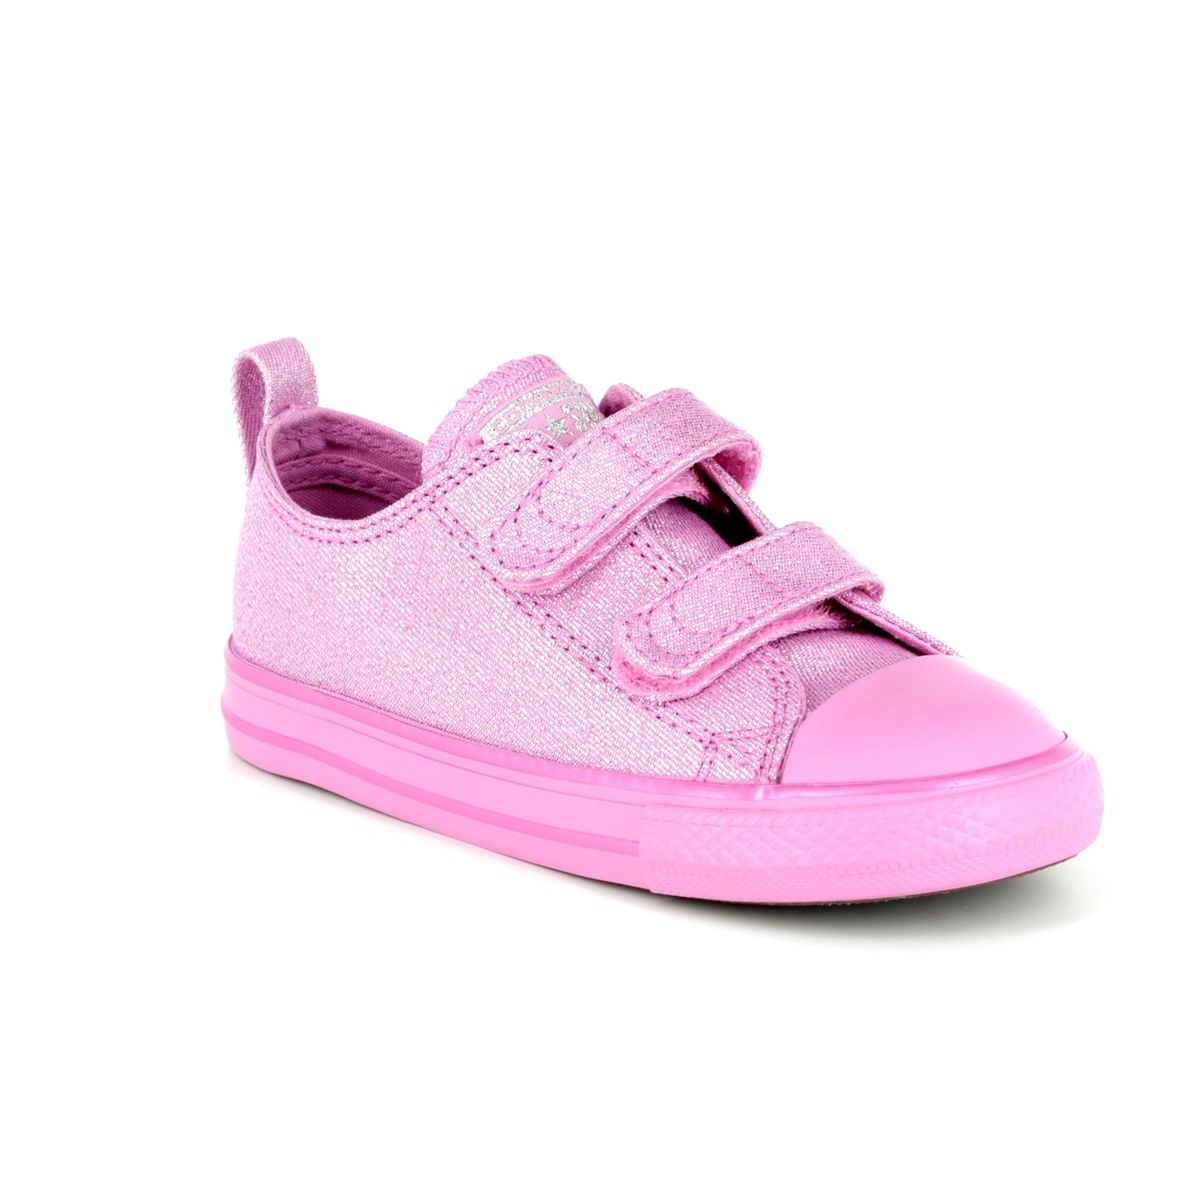 a7835cd58a18 Converse Trainers - Pink multi - 760061C ALL STAR OX VELCRO 2V